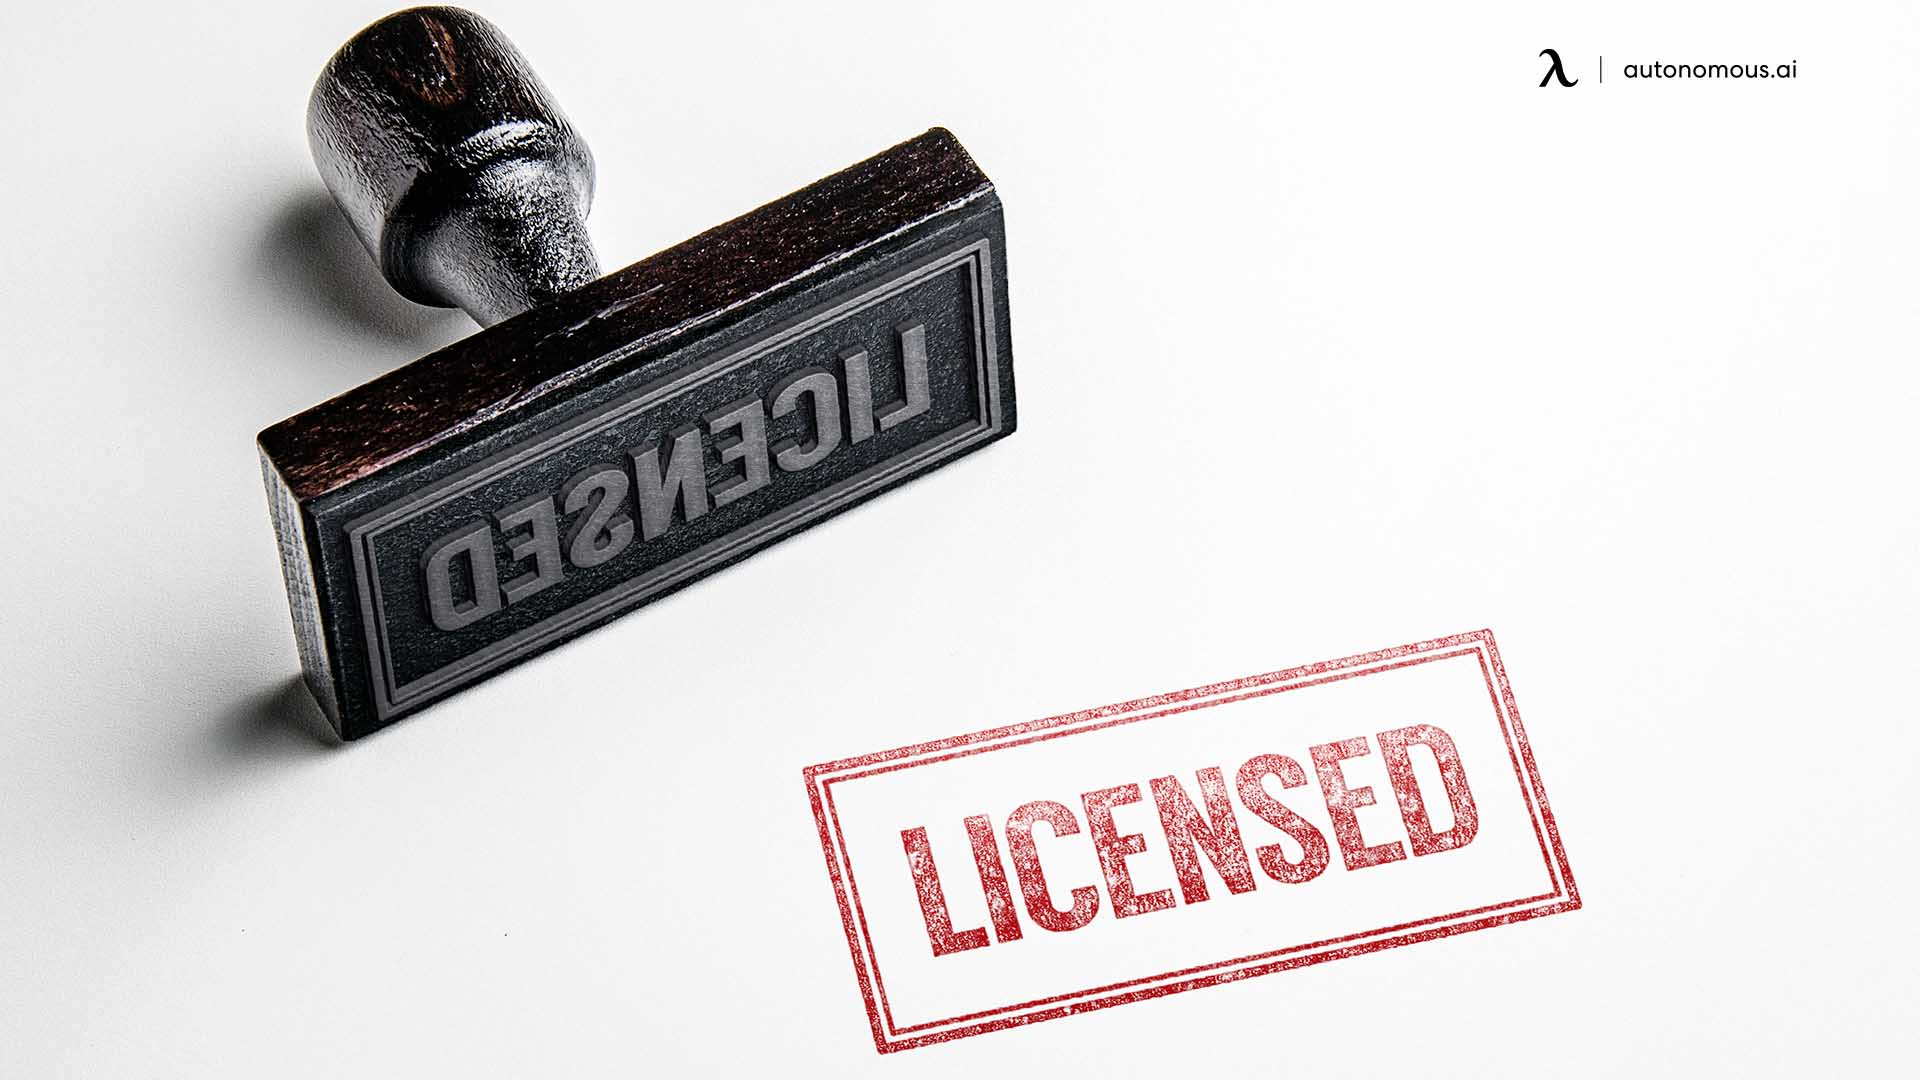 Tax registration and licenses